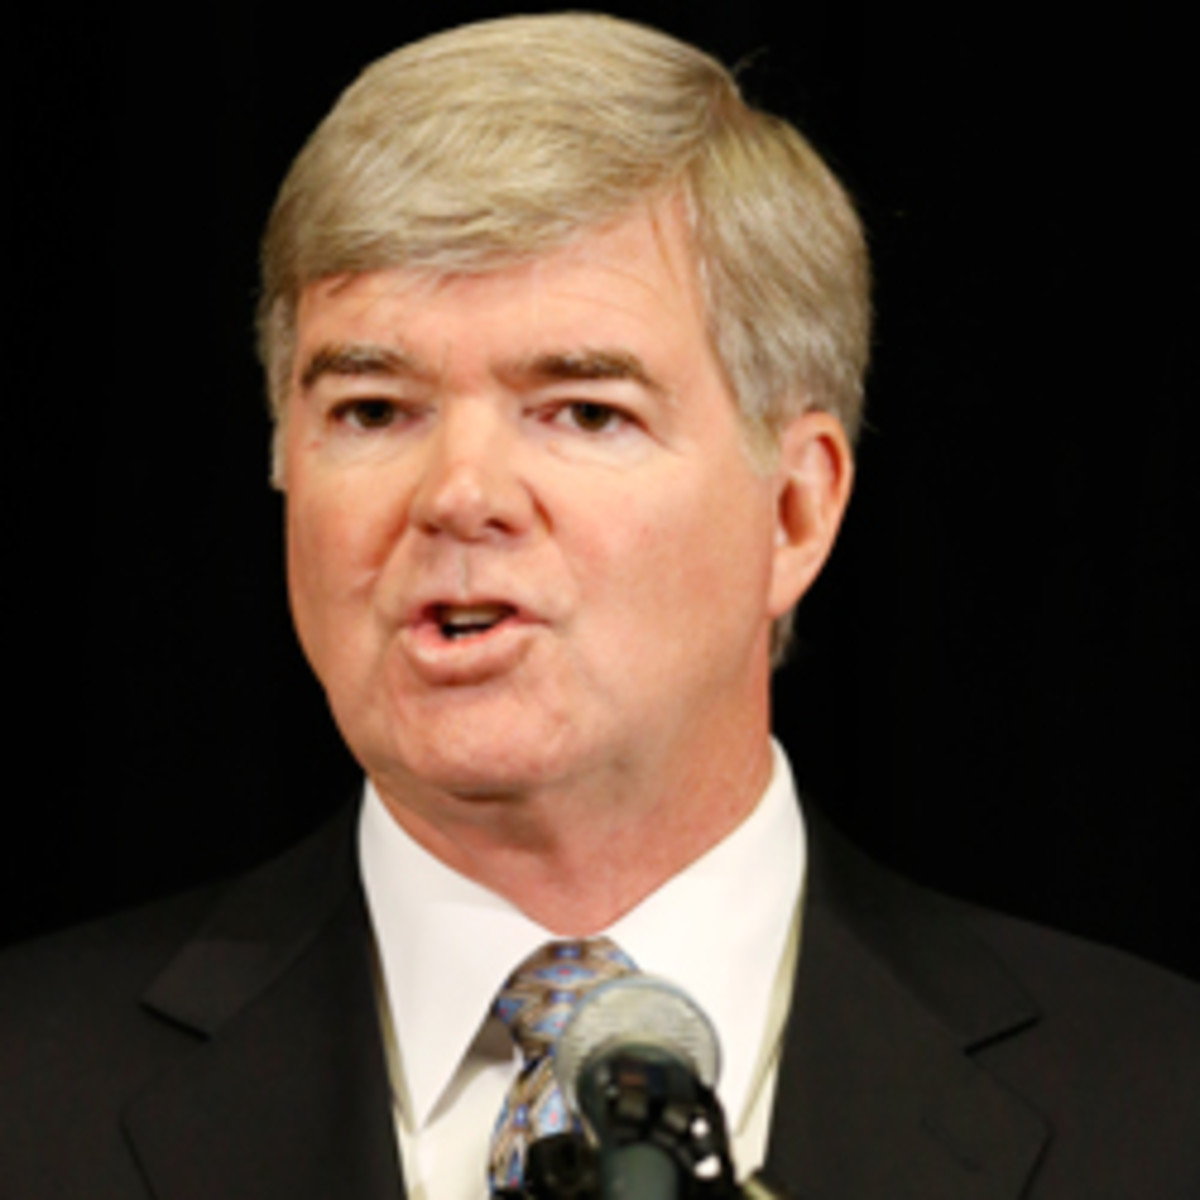 NCAA president Mark Emmert put the Miami investigation on hold after discovering major improper conduct. (Joe Robbins/Getty Images)